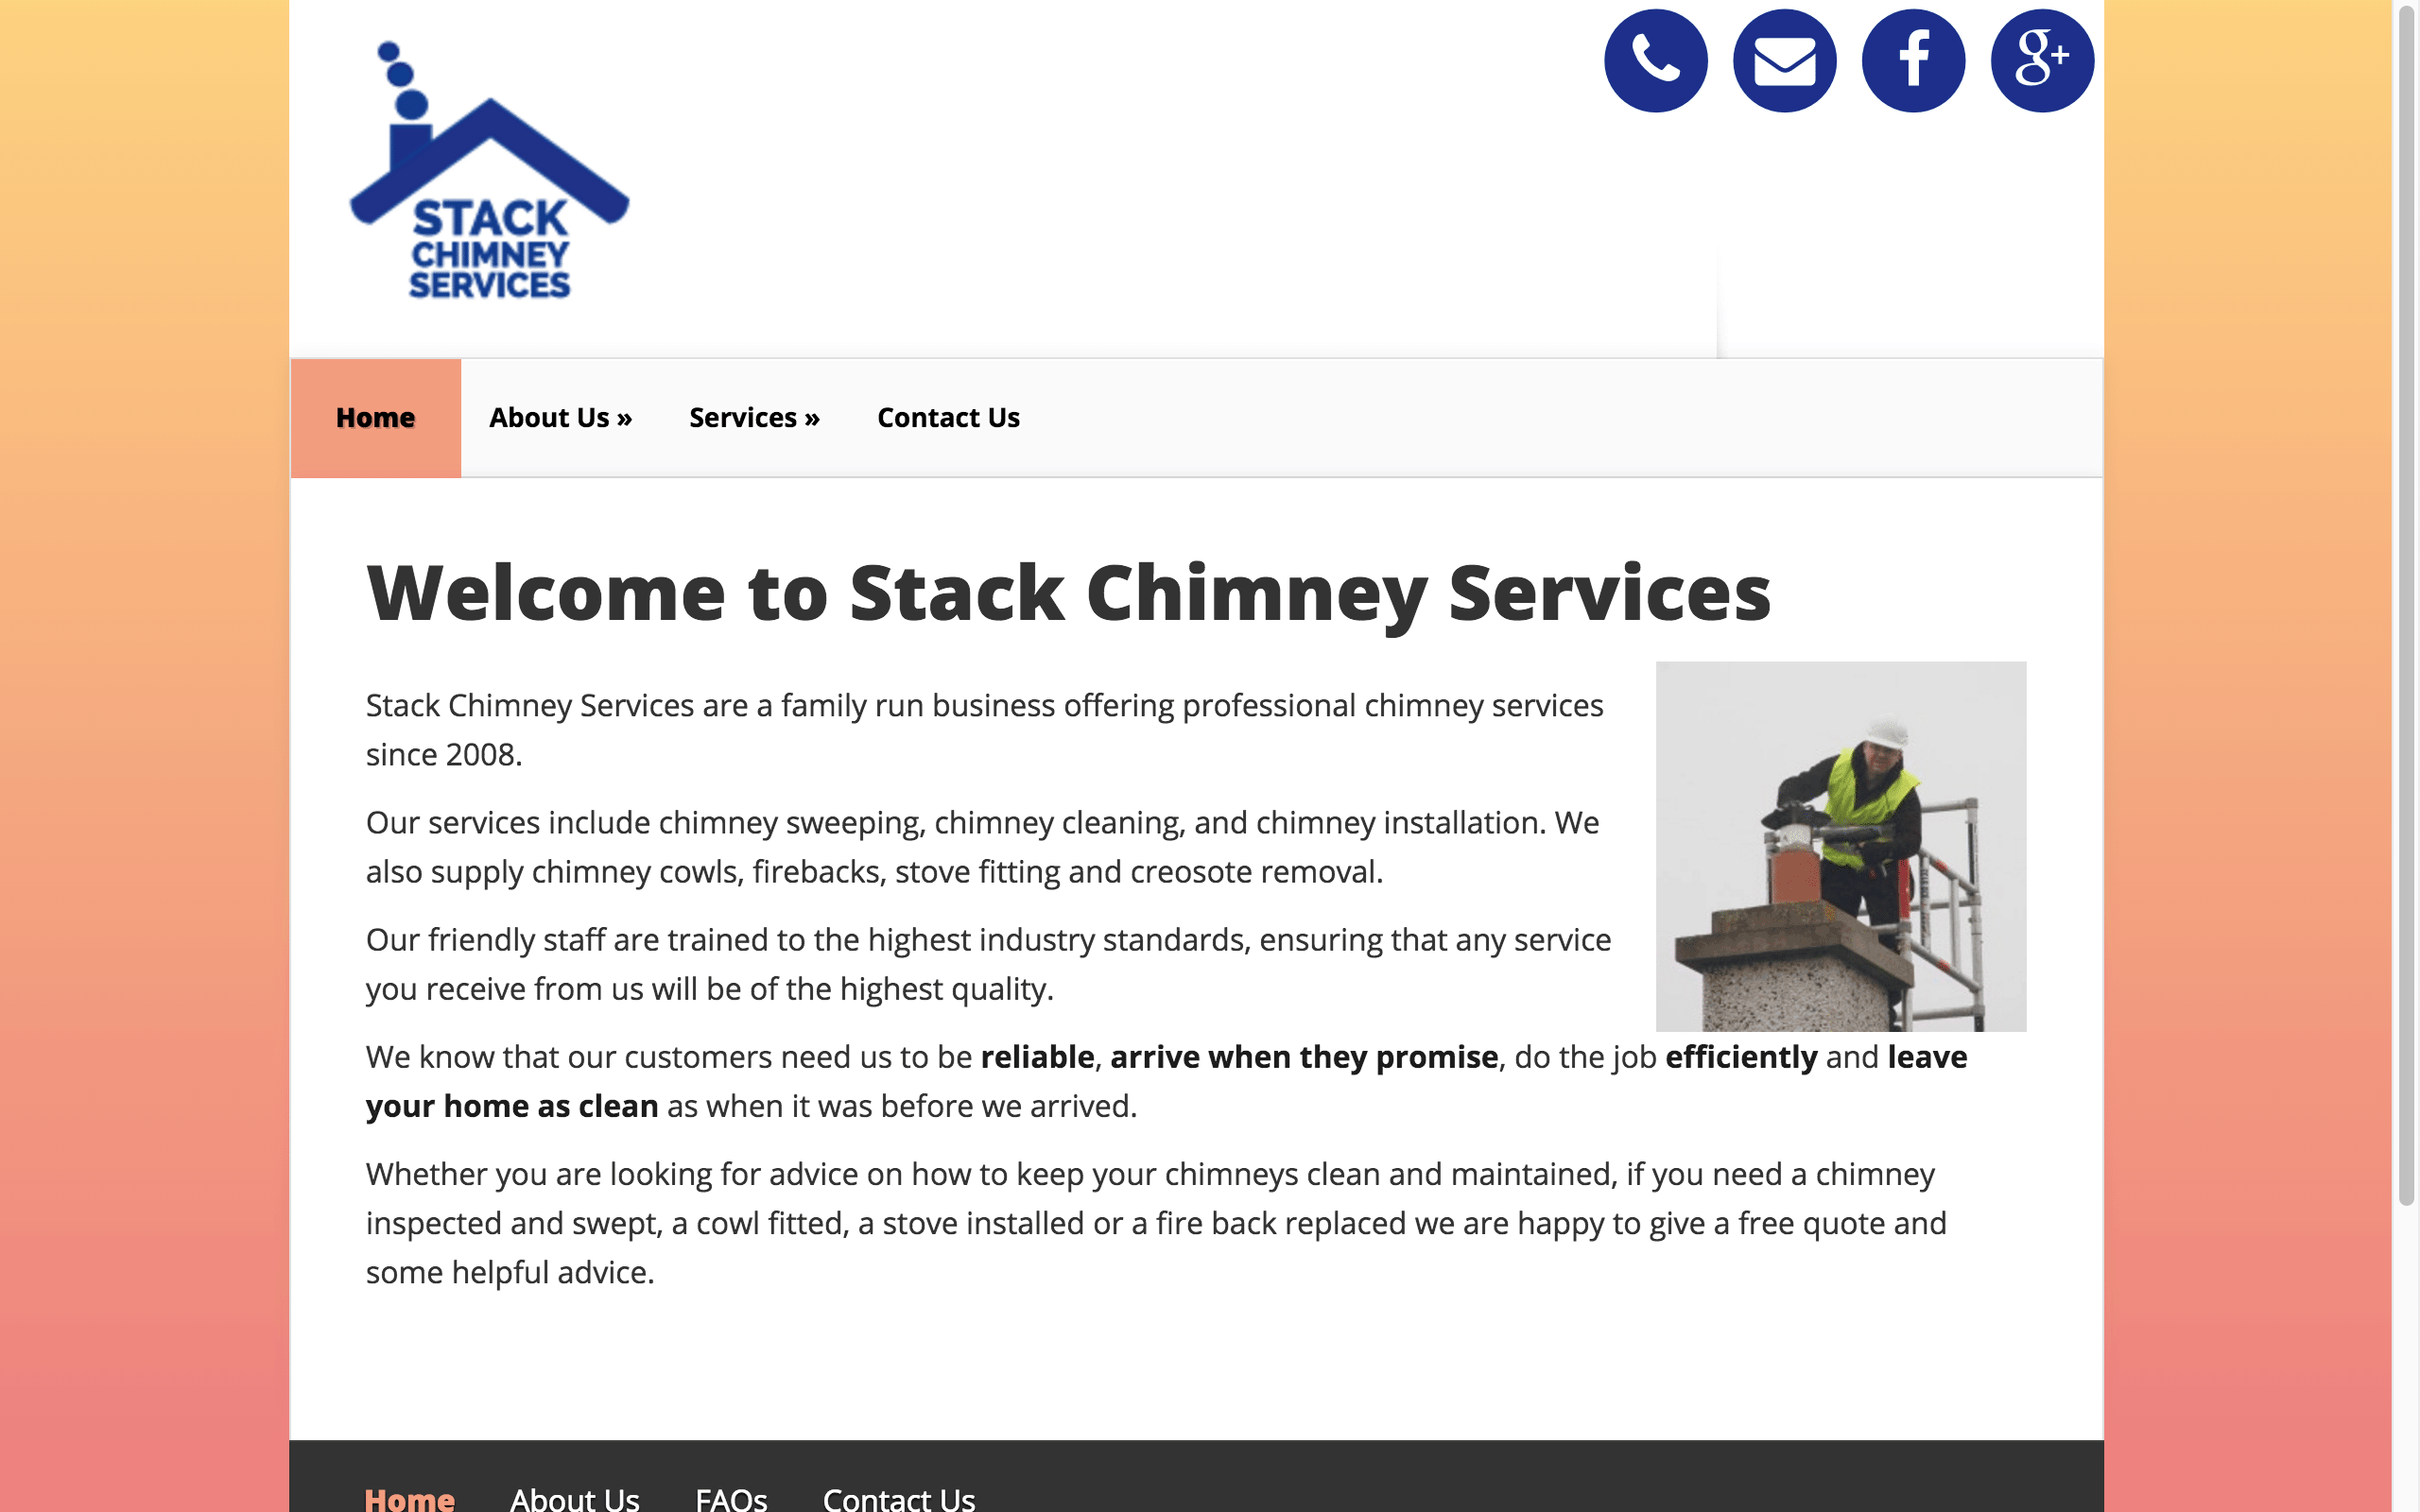 Stack Chimney Services Web Design